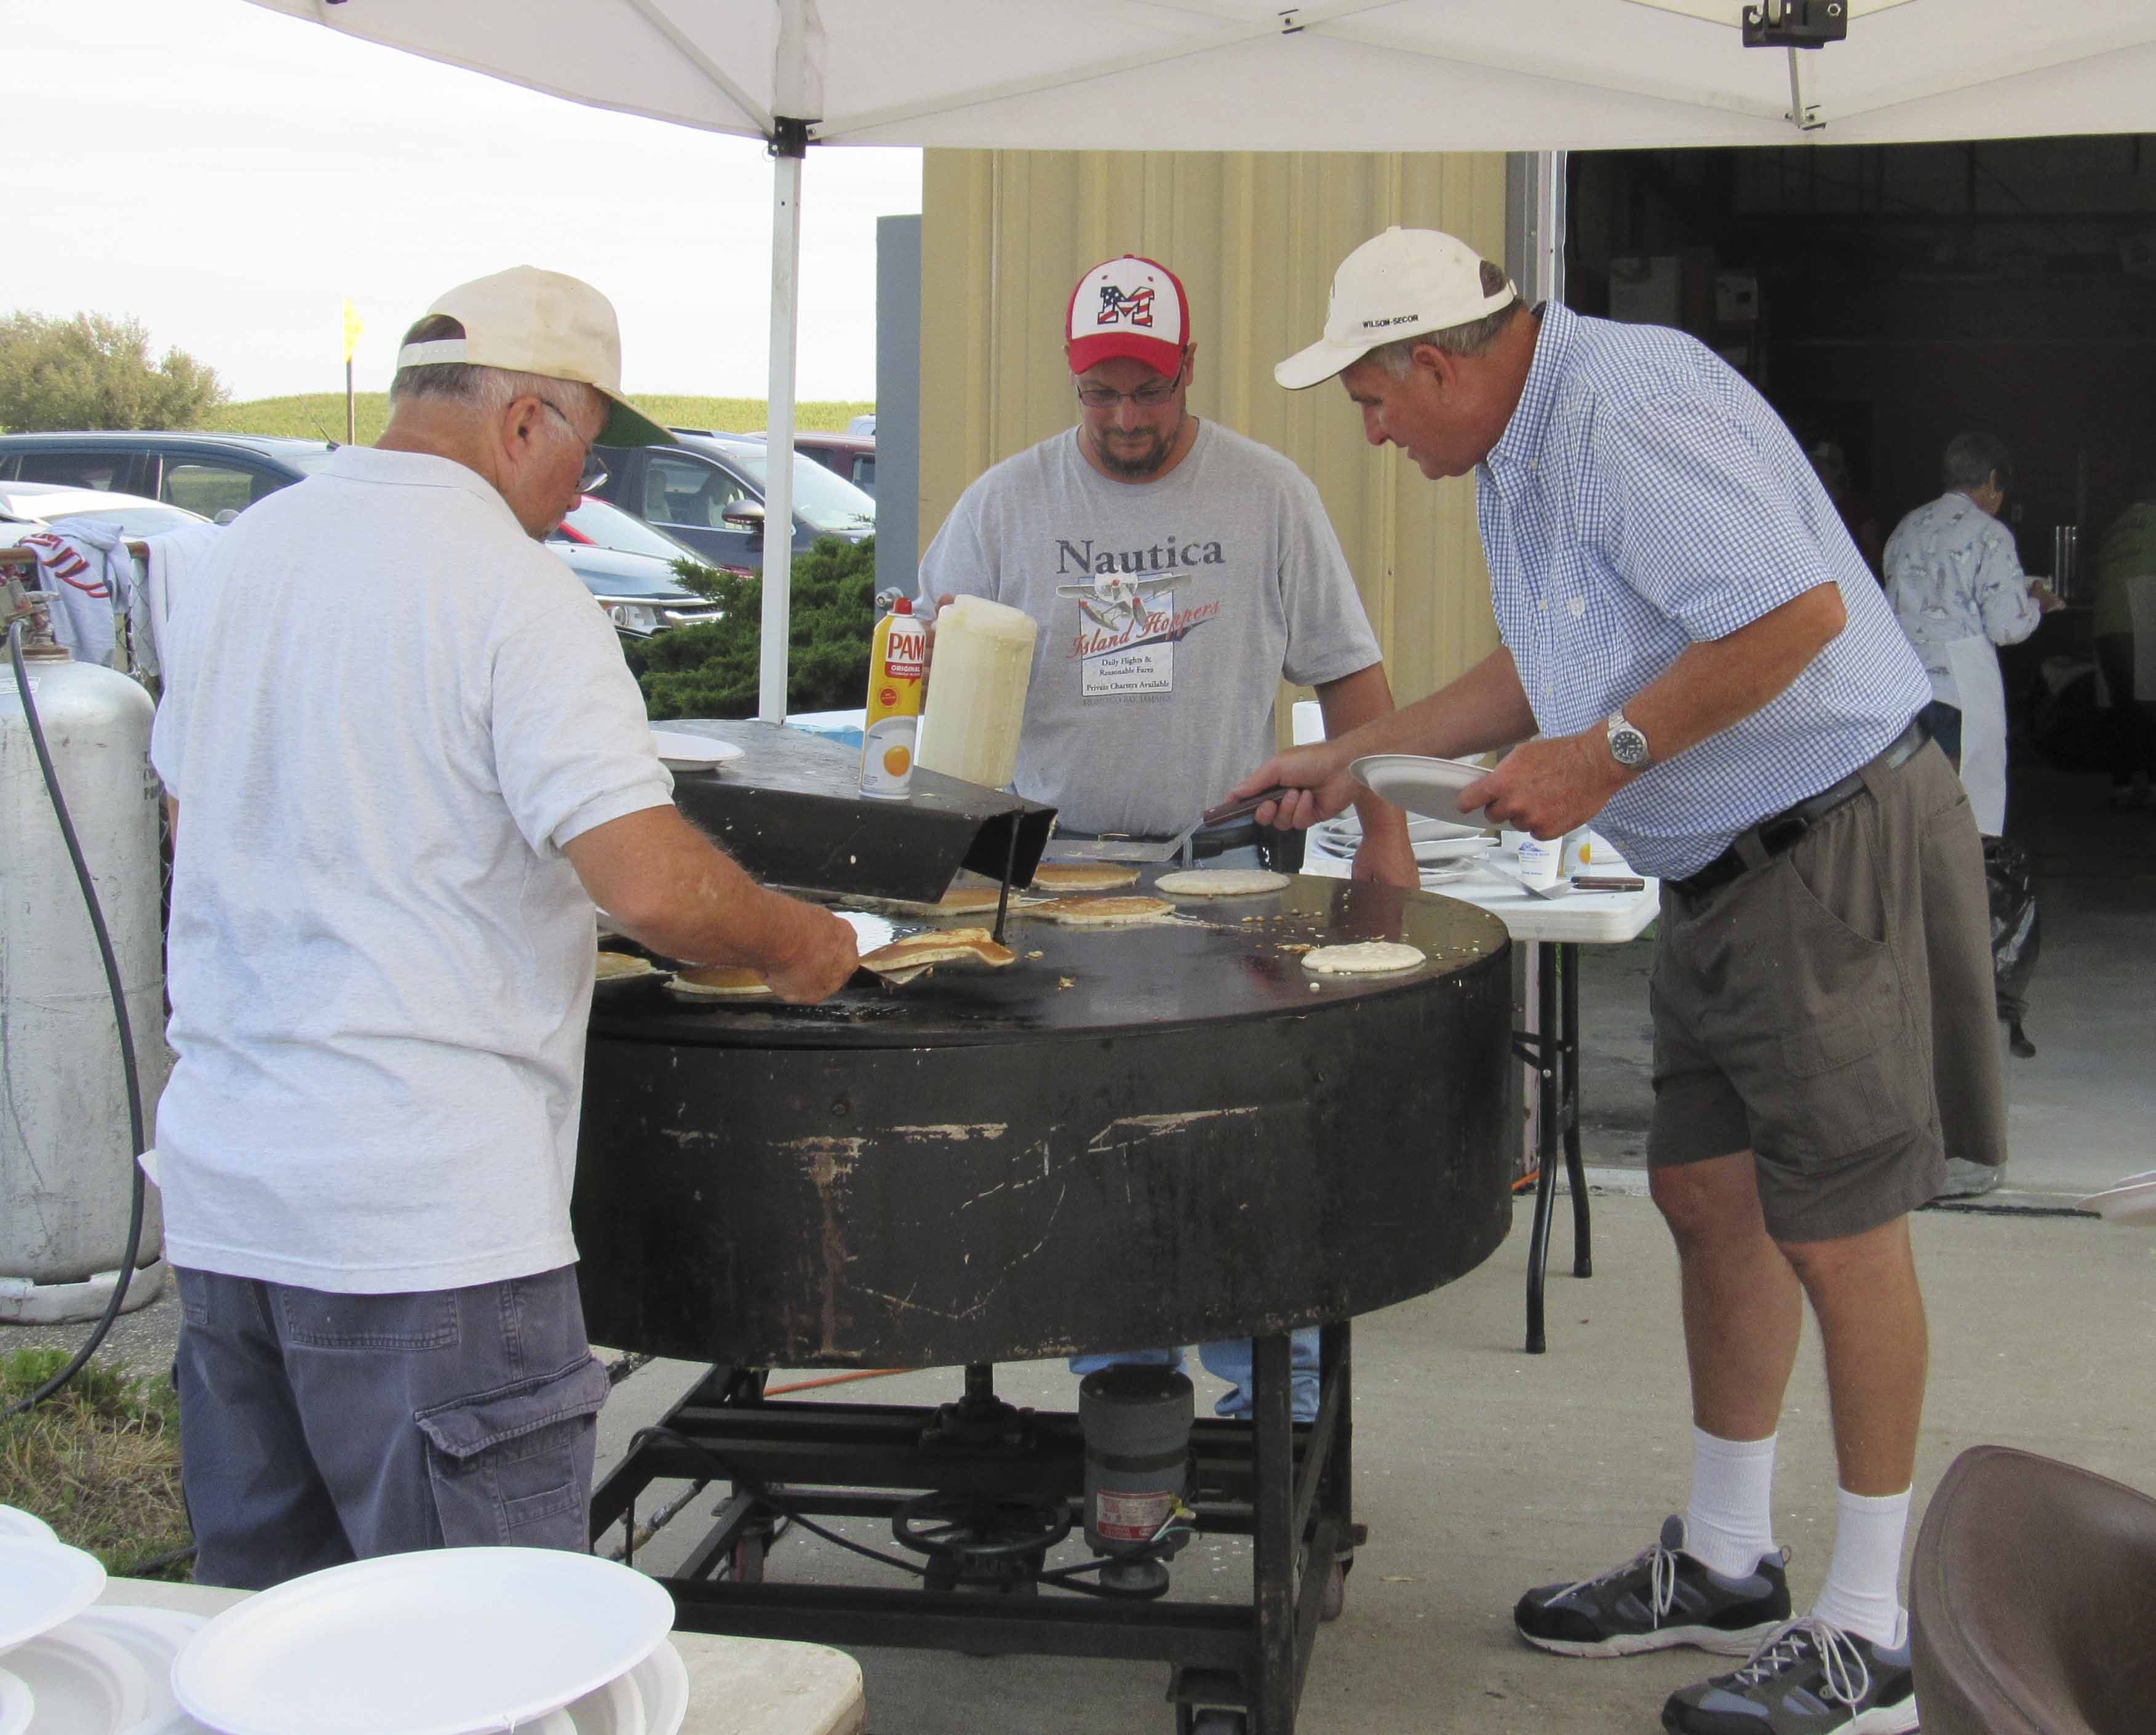 Dick Bartholomew, Mike Bader and Kevin Lynch volunteer at the pancake station for the Monticello airport's Fly-in Breakfast. (Photos by Kim Brooks)